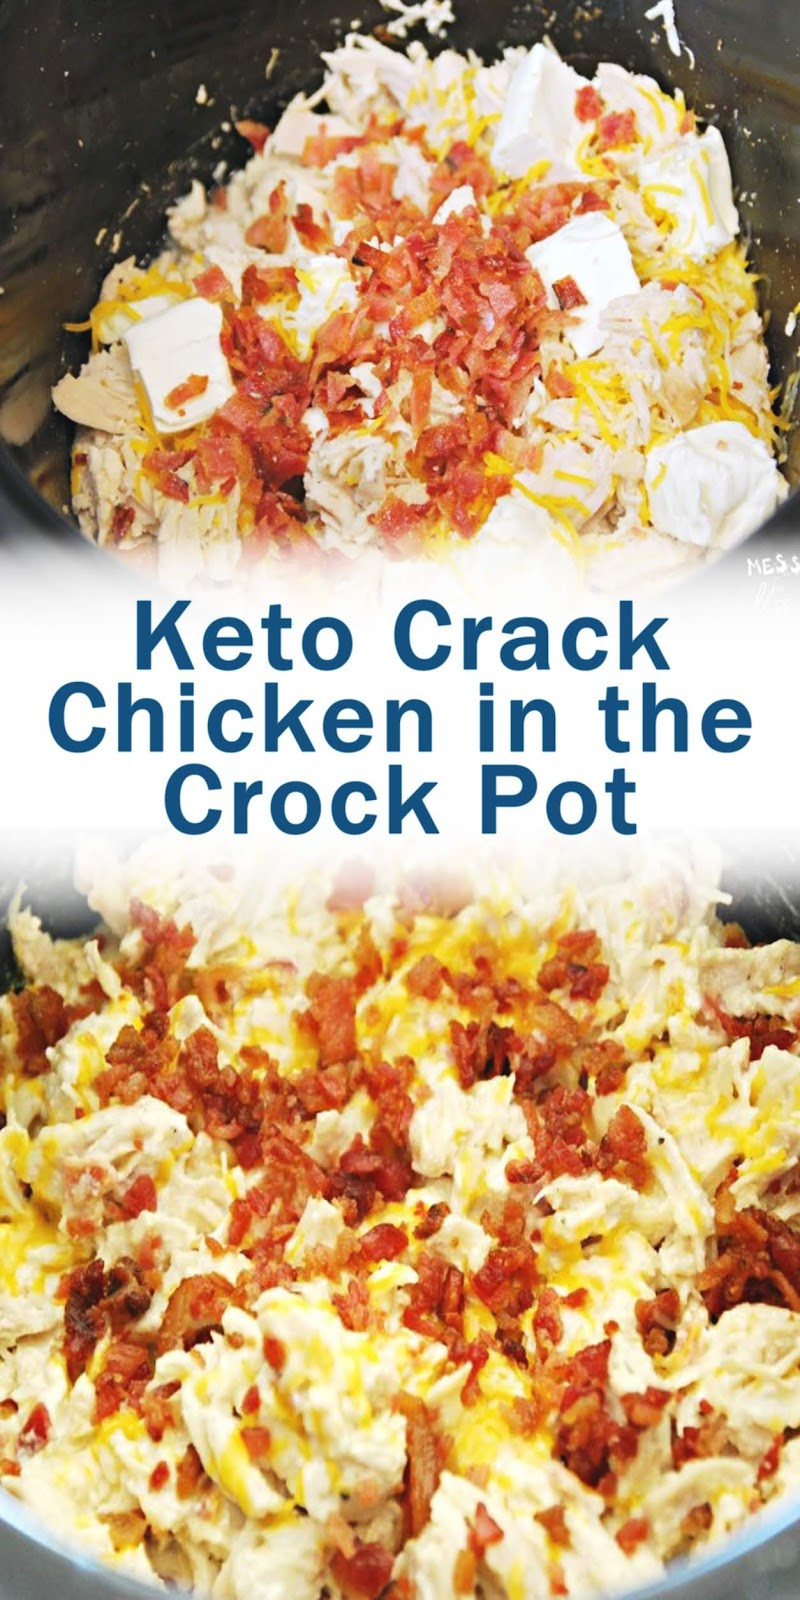 Crockpot Crack Chicken Keto  Keto Crack Chicken in the Crock Pot